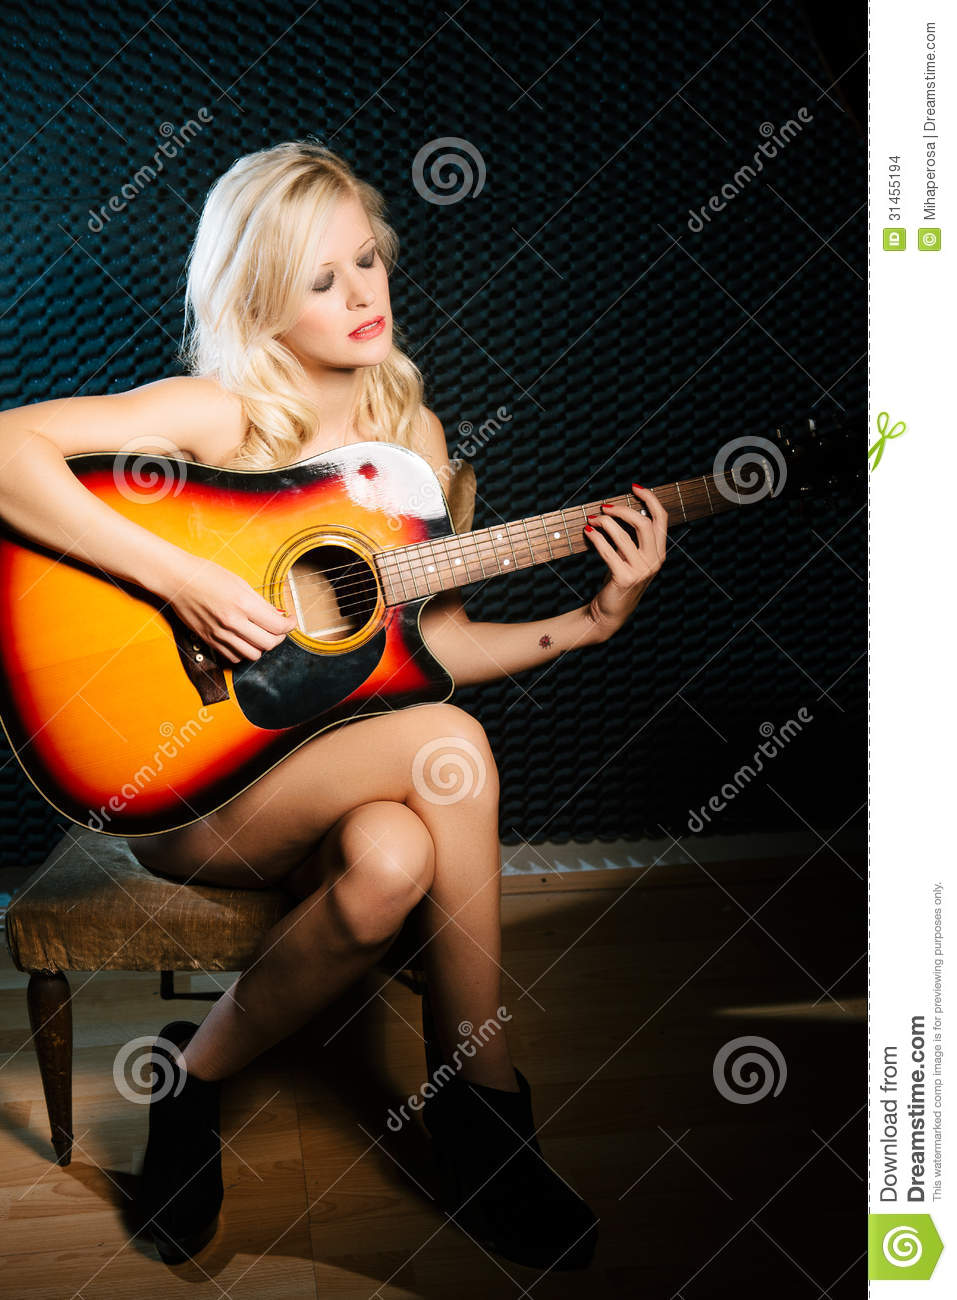 Opinion you girl play guitar nude are mistaken